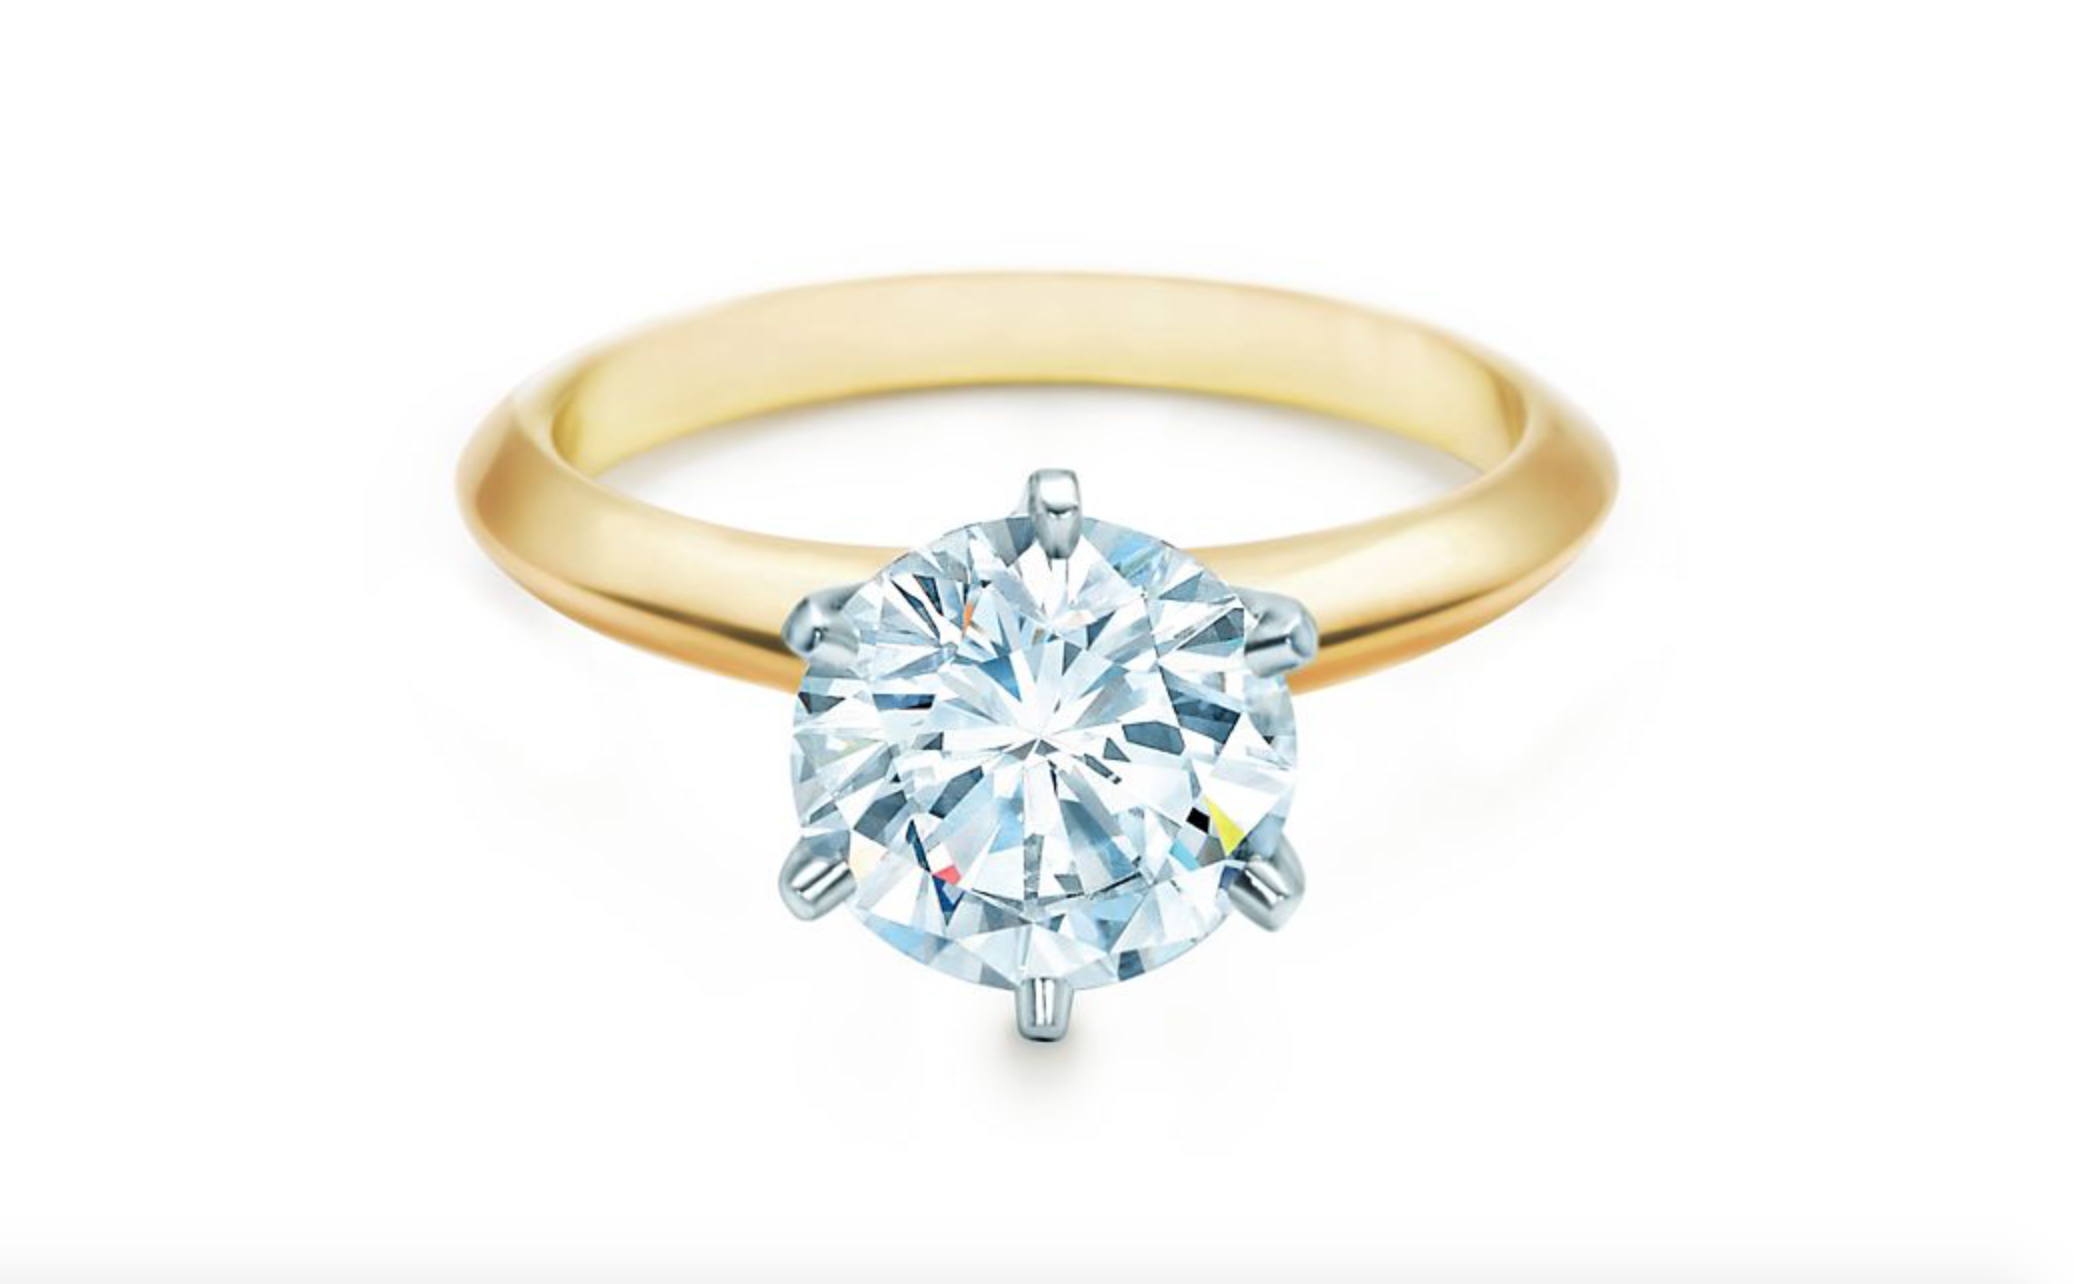 of be hard offering mociun a truly pin find to rings with the effortlessly engagement stylish freshest